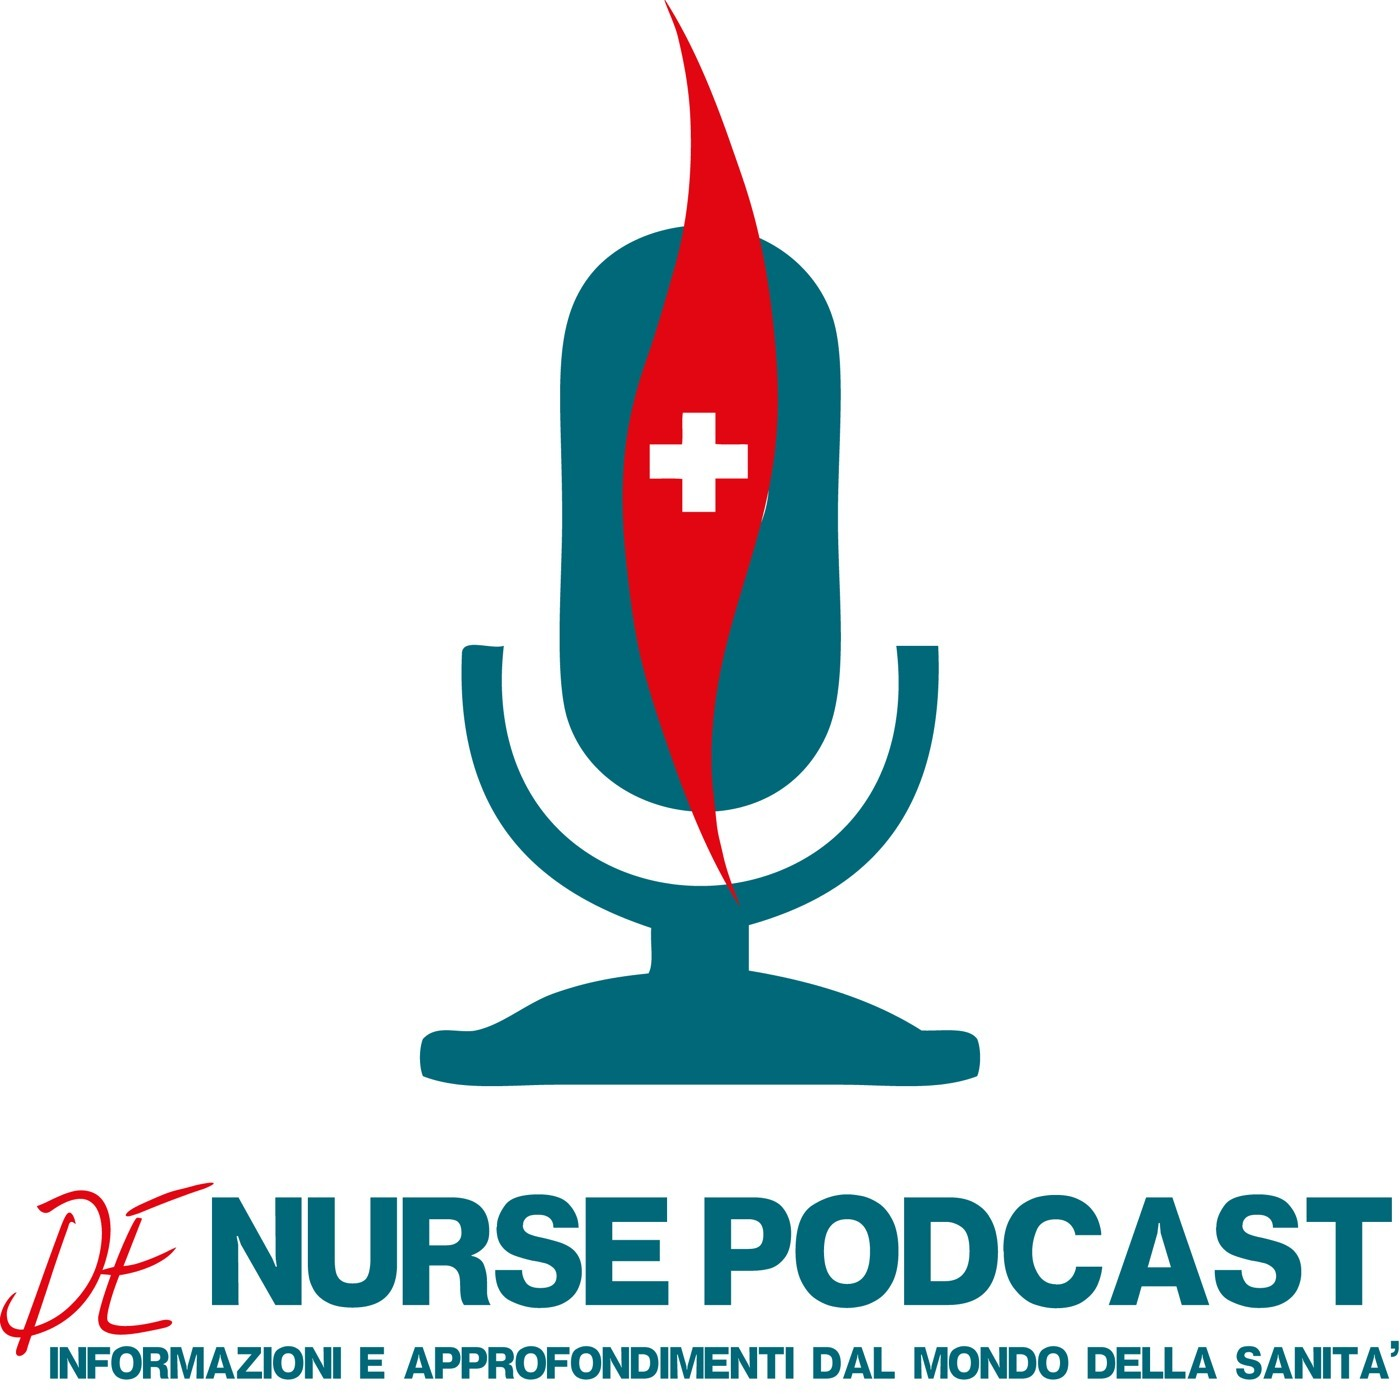 DeNURSE Podcast